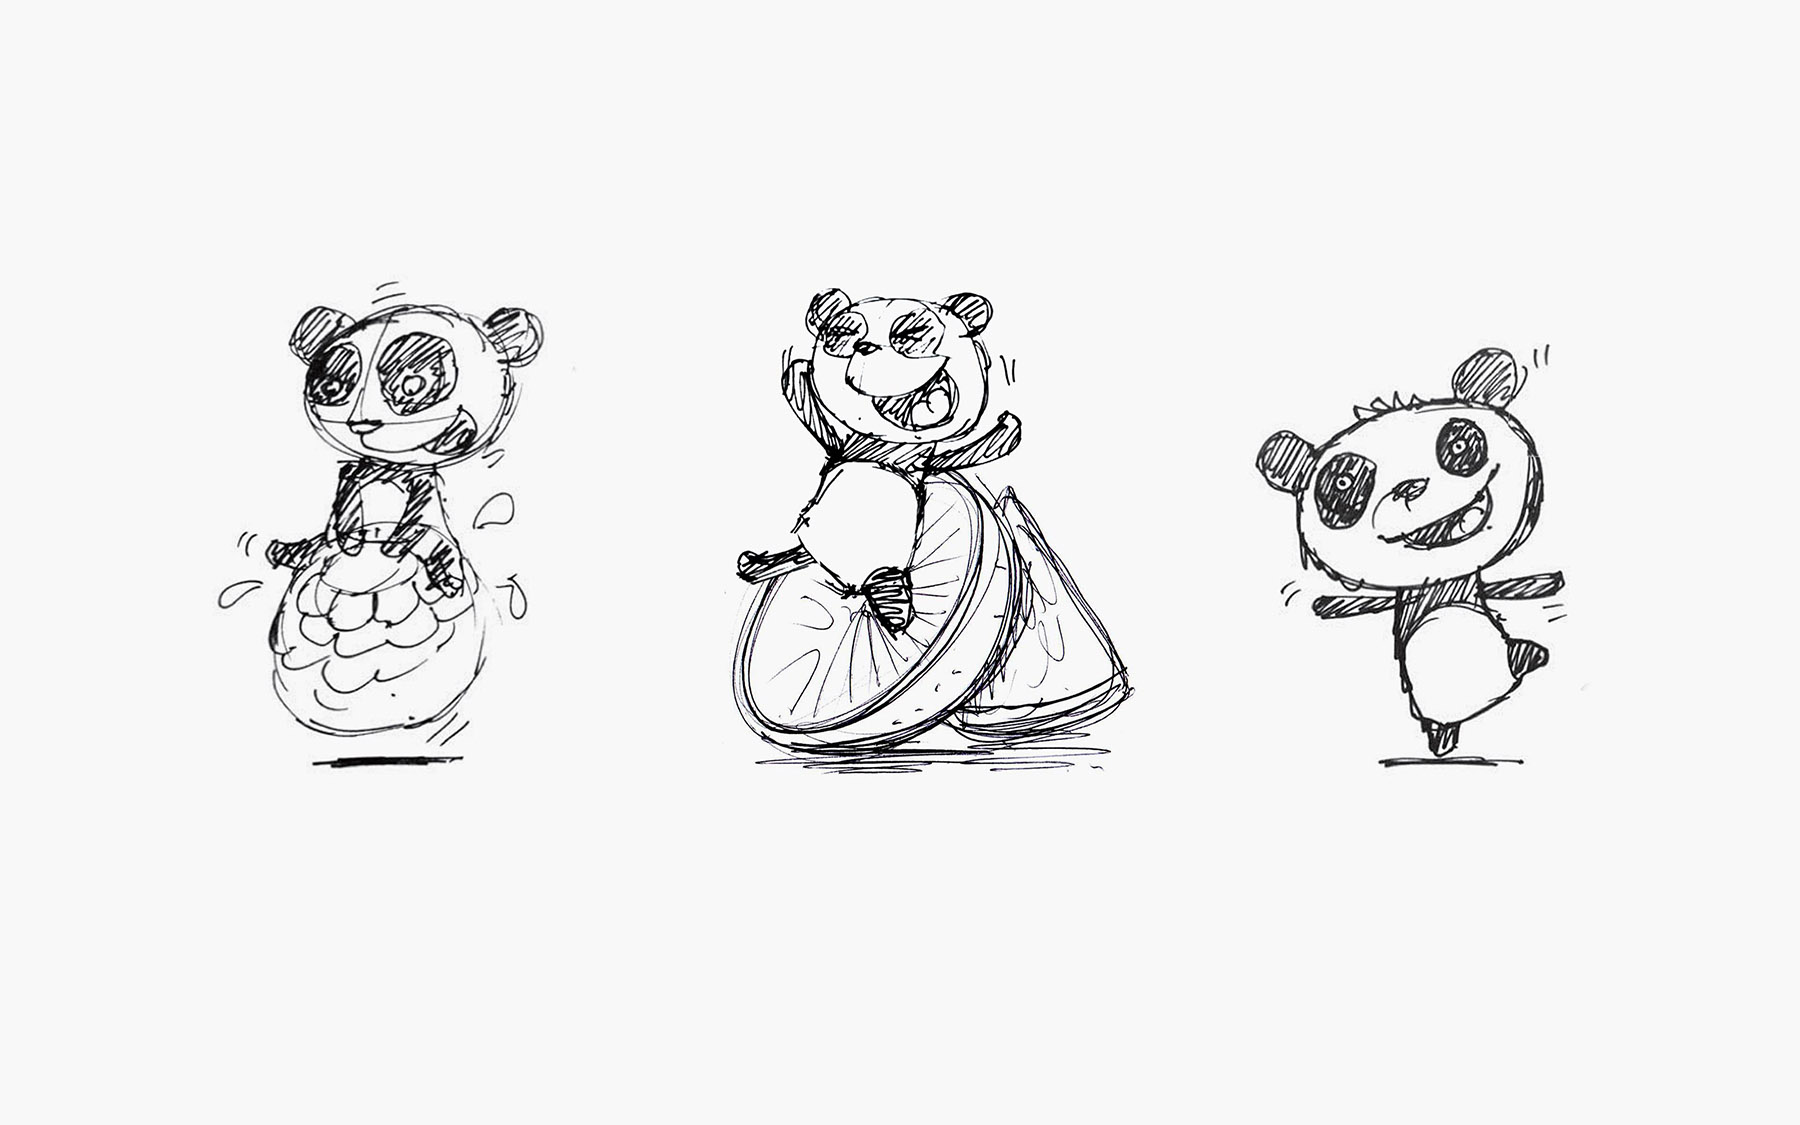 Panda-Web-Pages-3200-x-2000-Sketch3